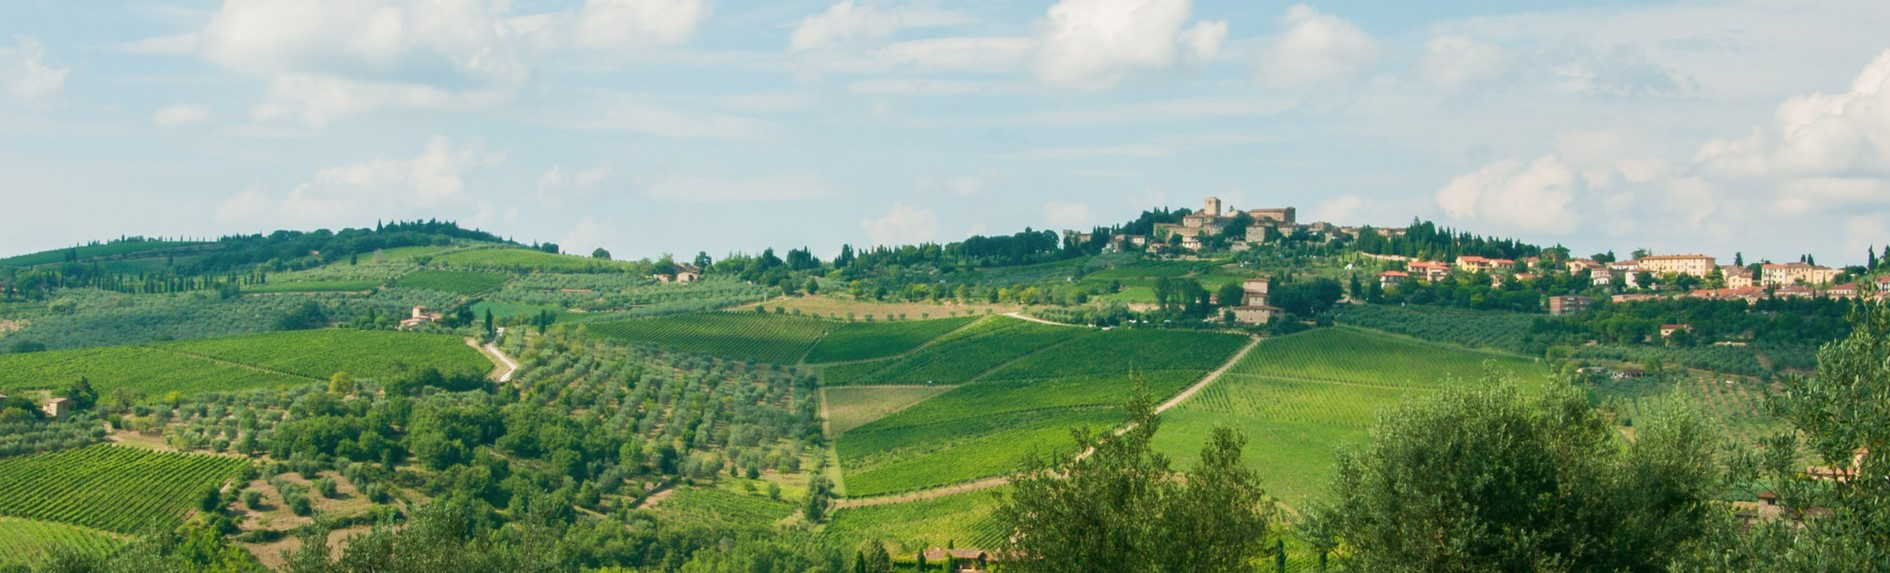 What is the best time of year to go to Tuscany?